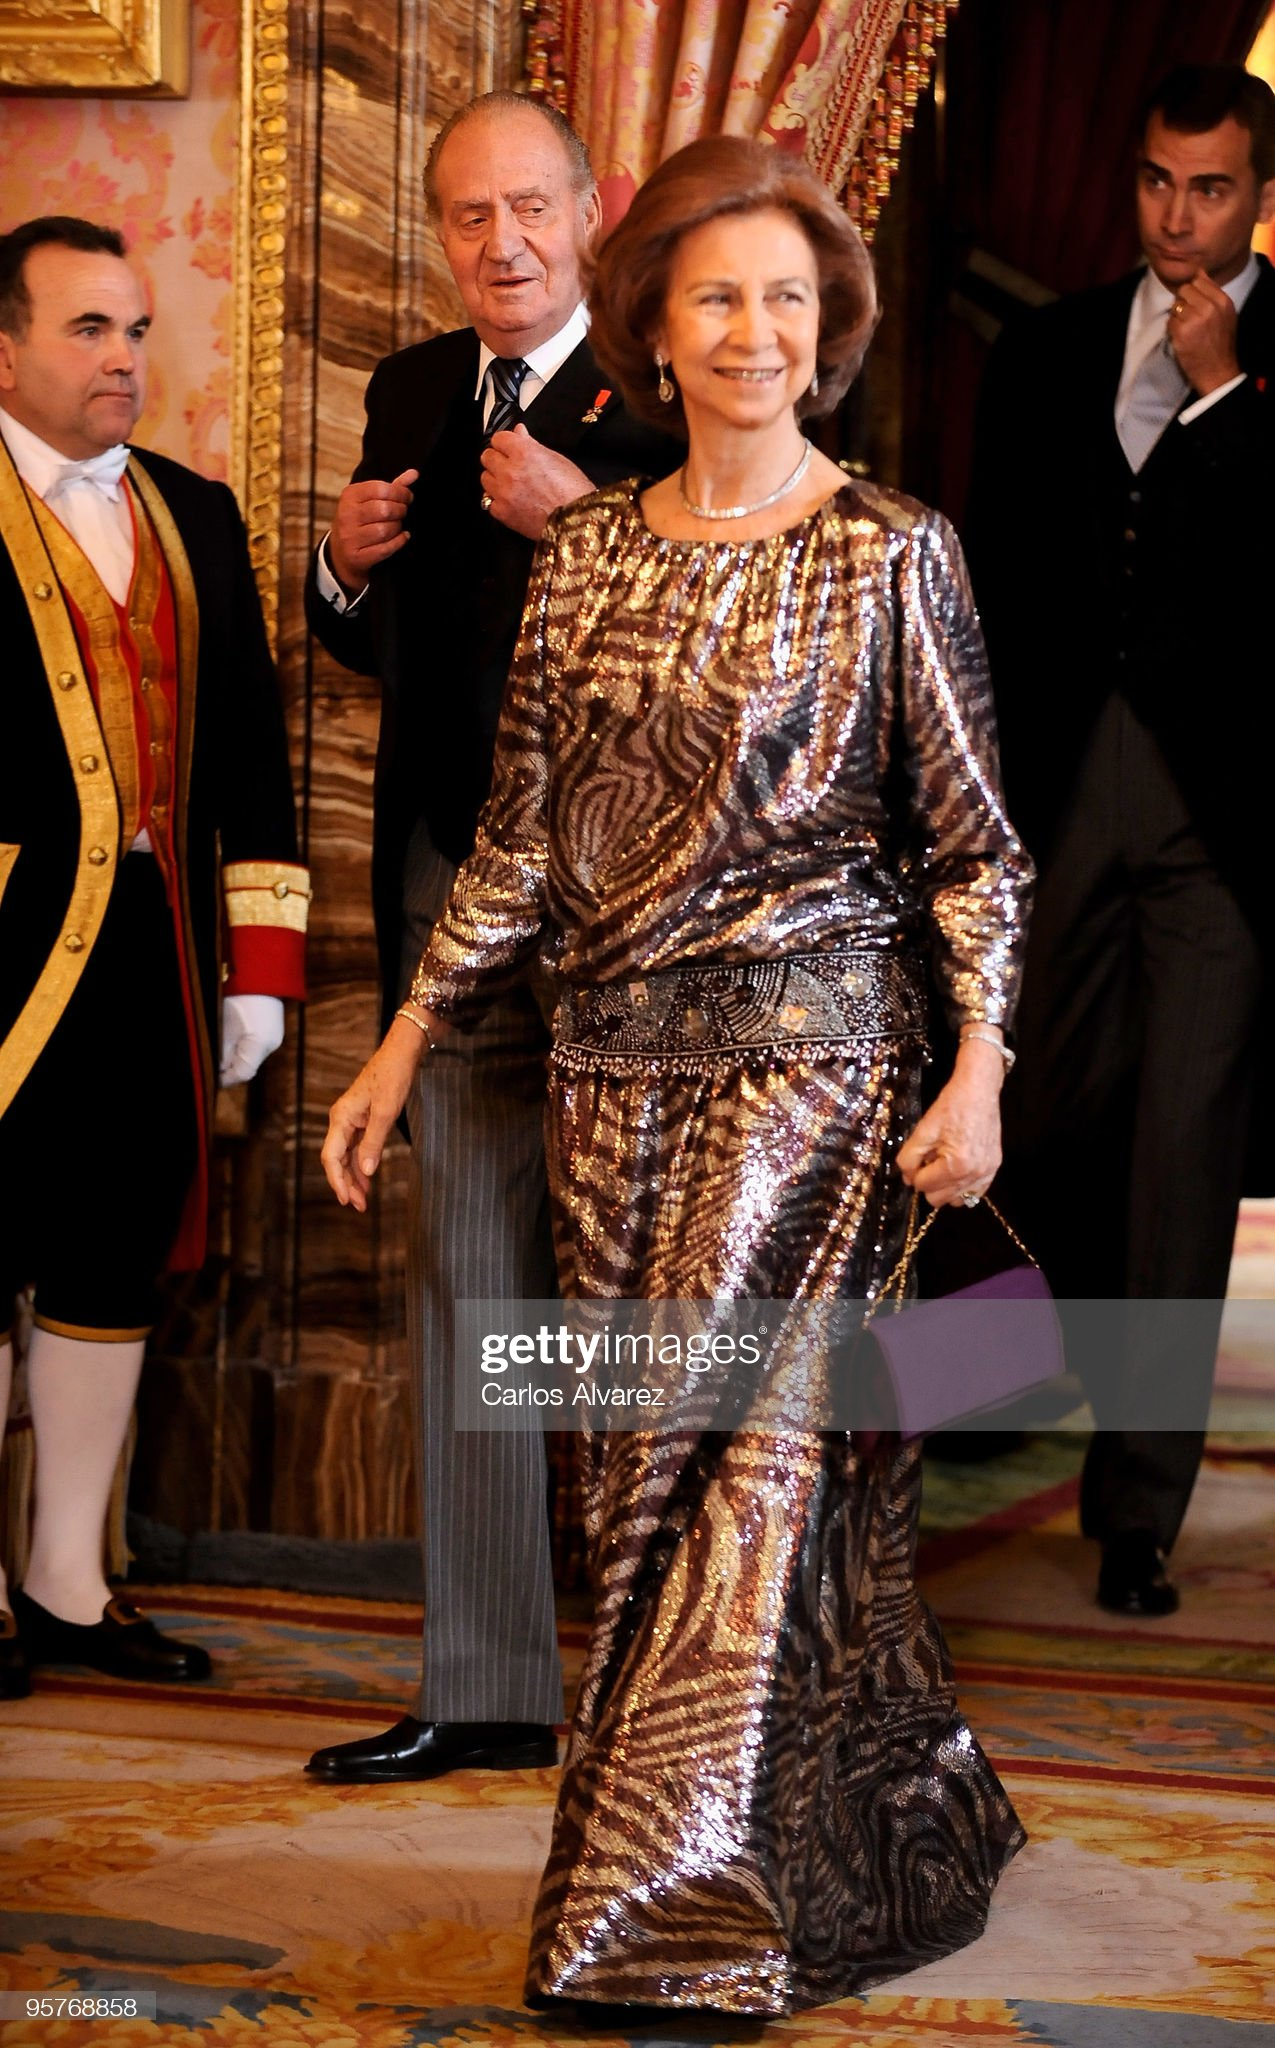 Spanish Royals Host Ambassadors Reception in Madrid : News Photo